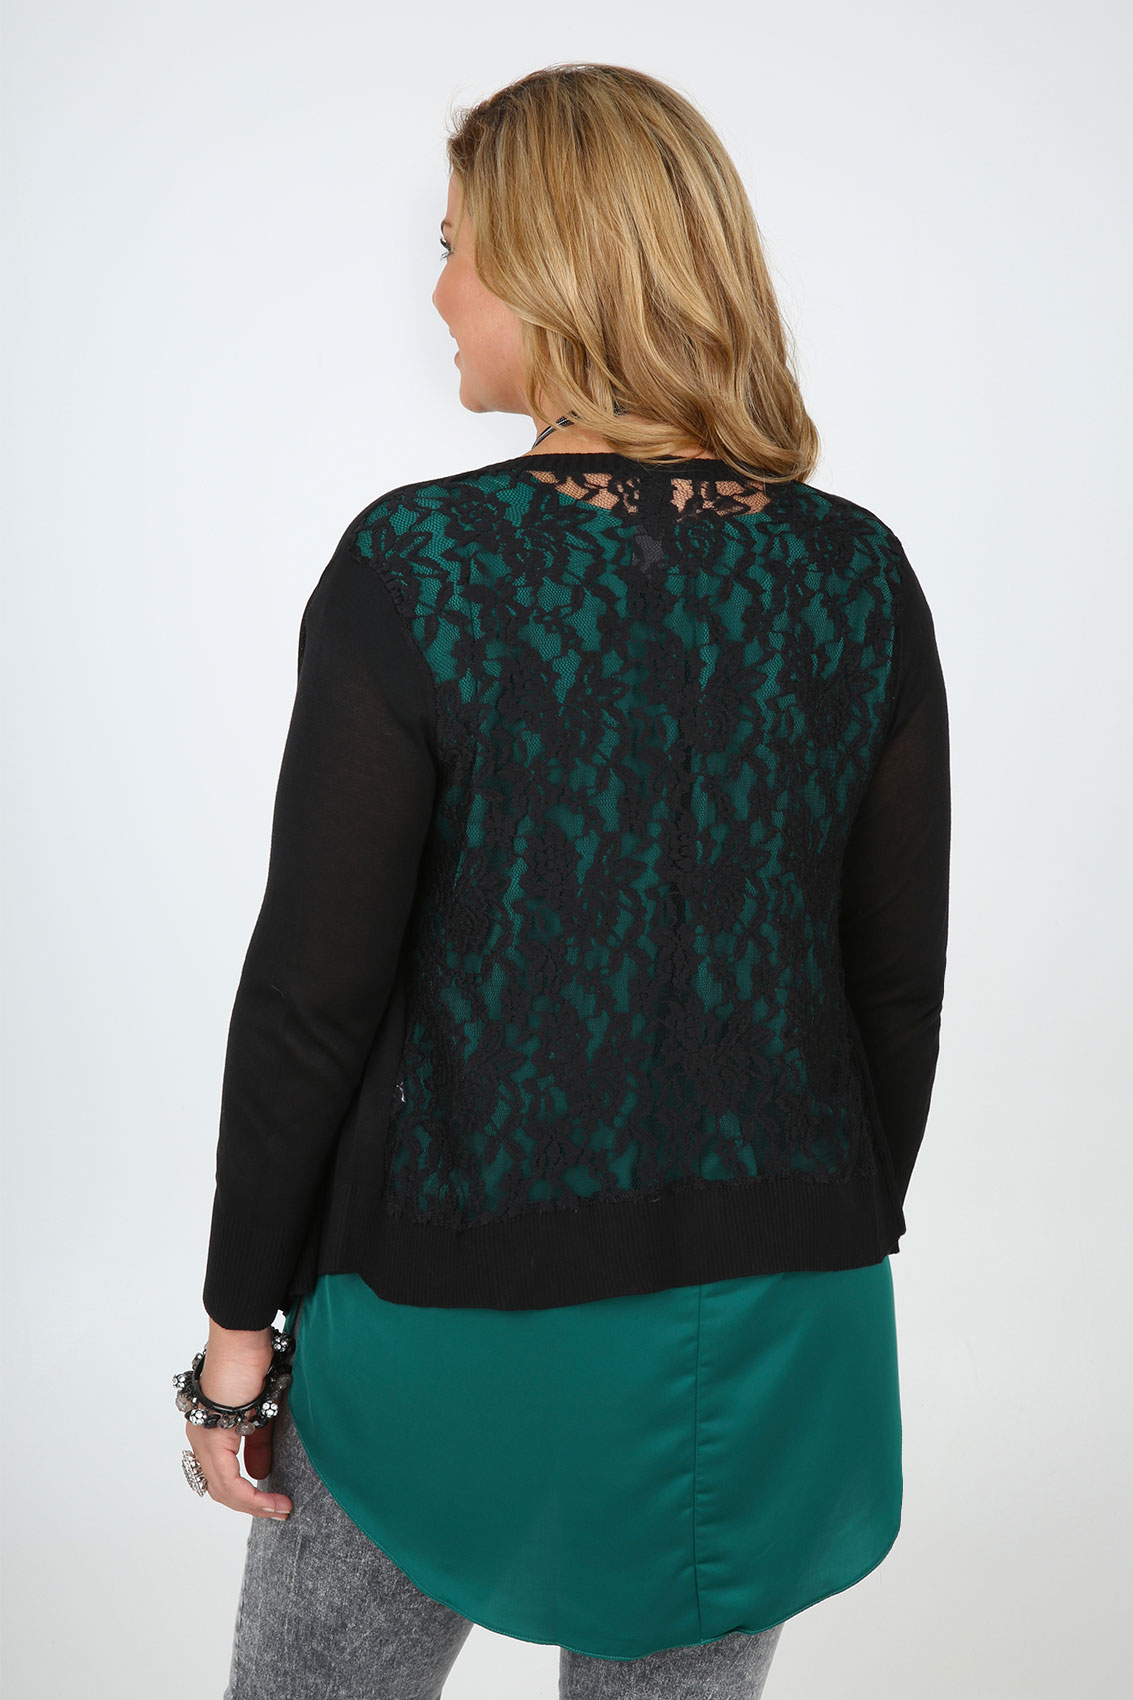 black fine knit waterfall front cardigan with lace back plus size 16 18 20 22 24 26 28 30 32. Black Bedroom Furniture Sets. Home Design Ideas